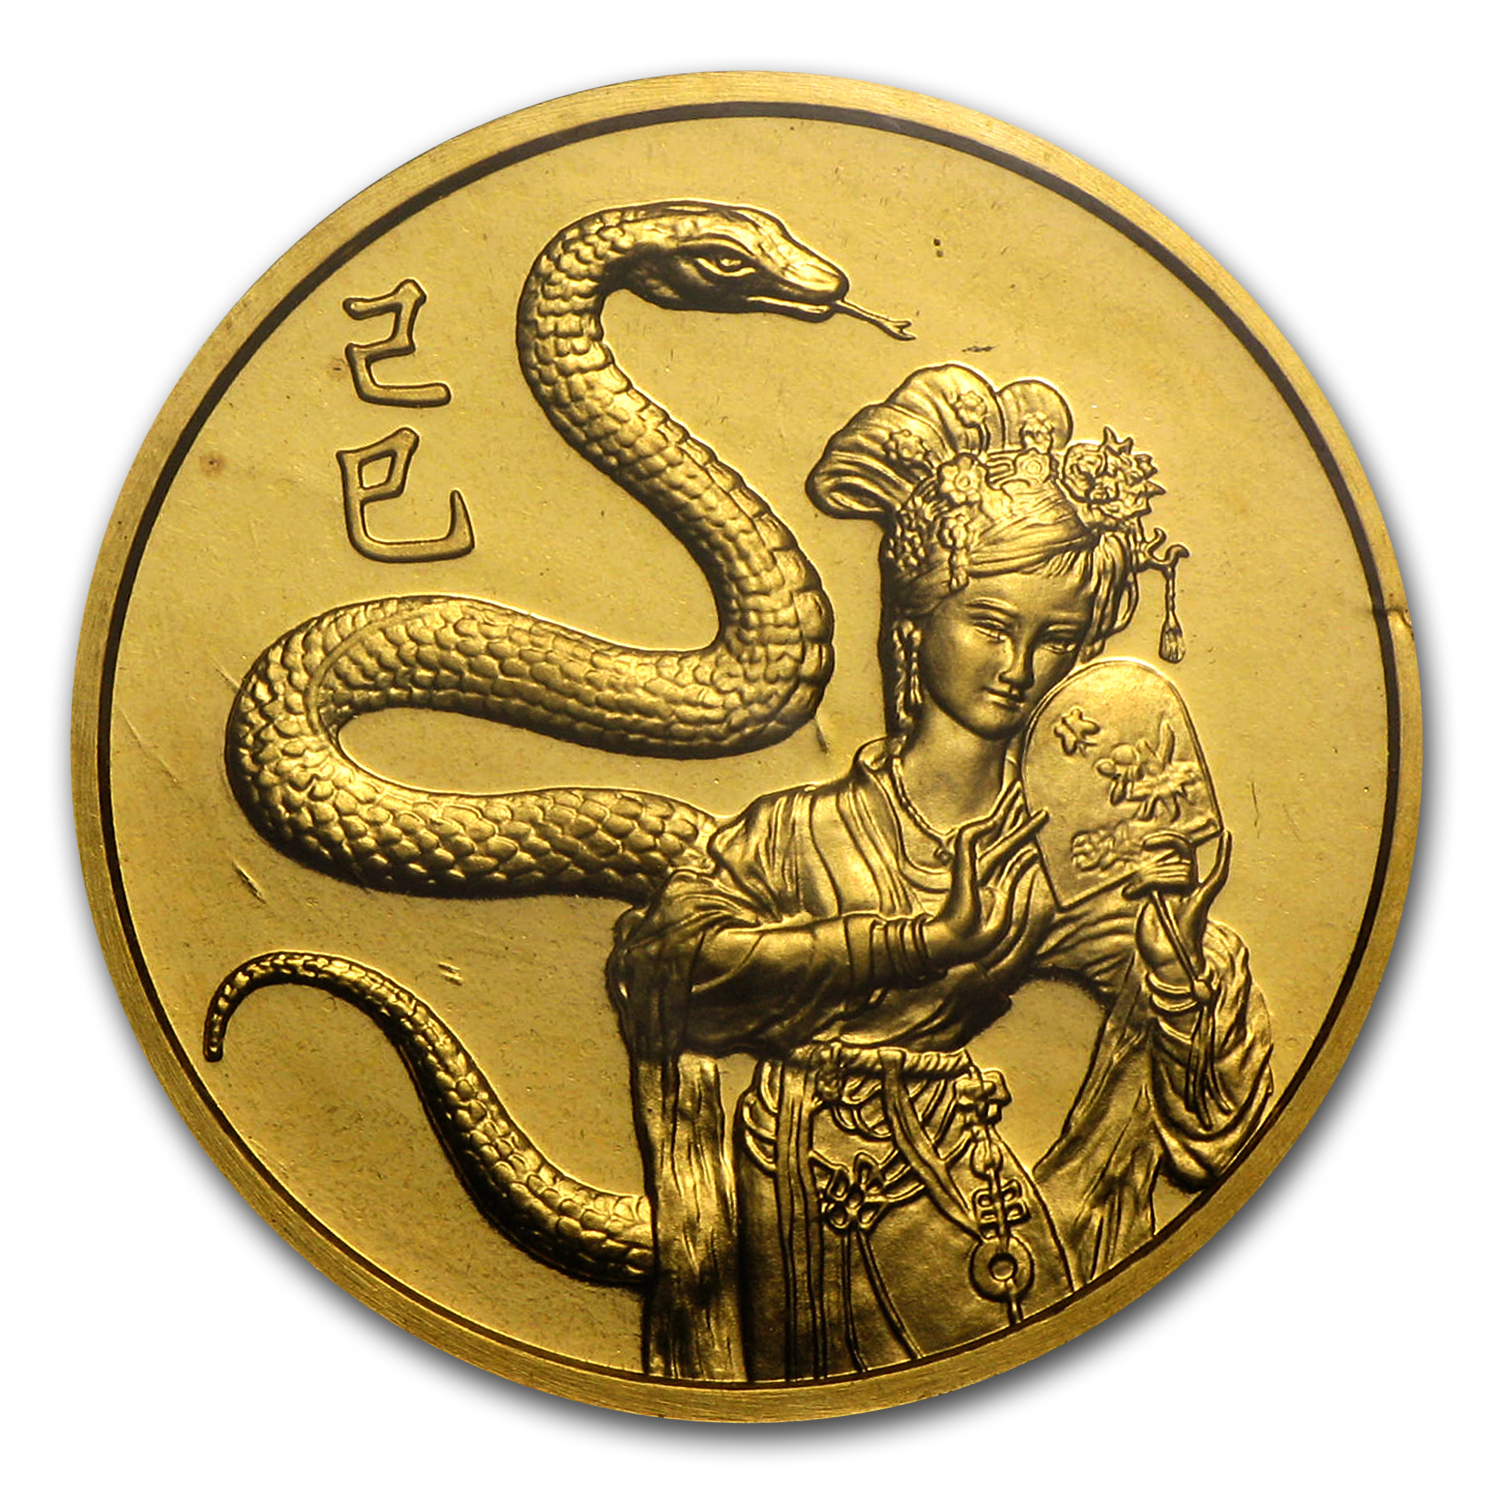 1989 1/4 oz Gold Singapore 25 Singold Snake Proof